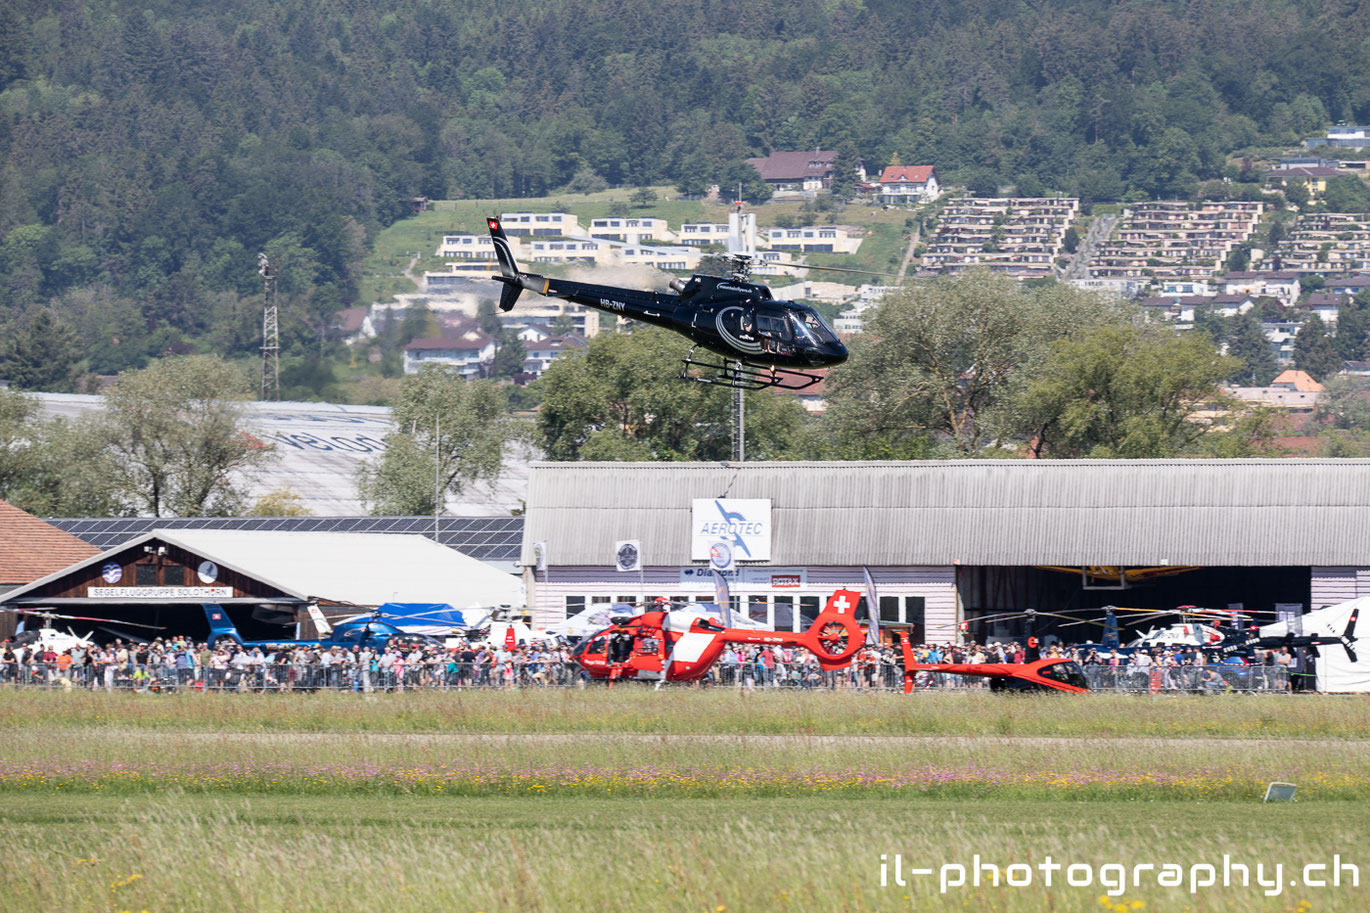 Heliweekend in Grenchen.